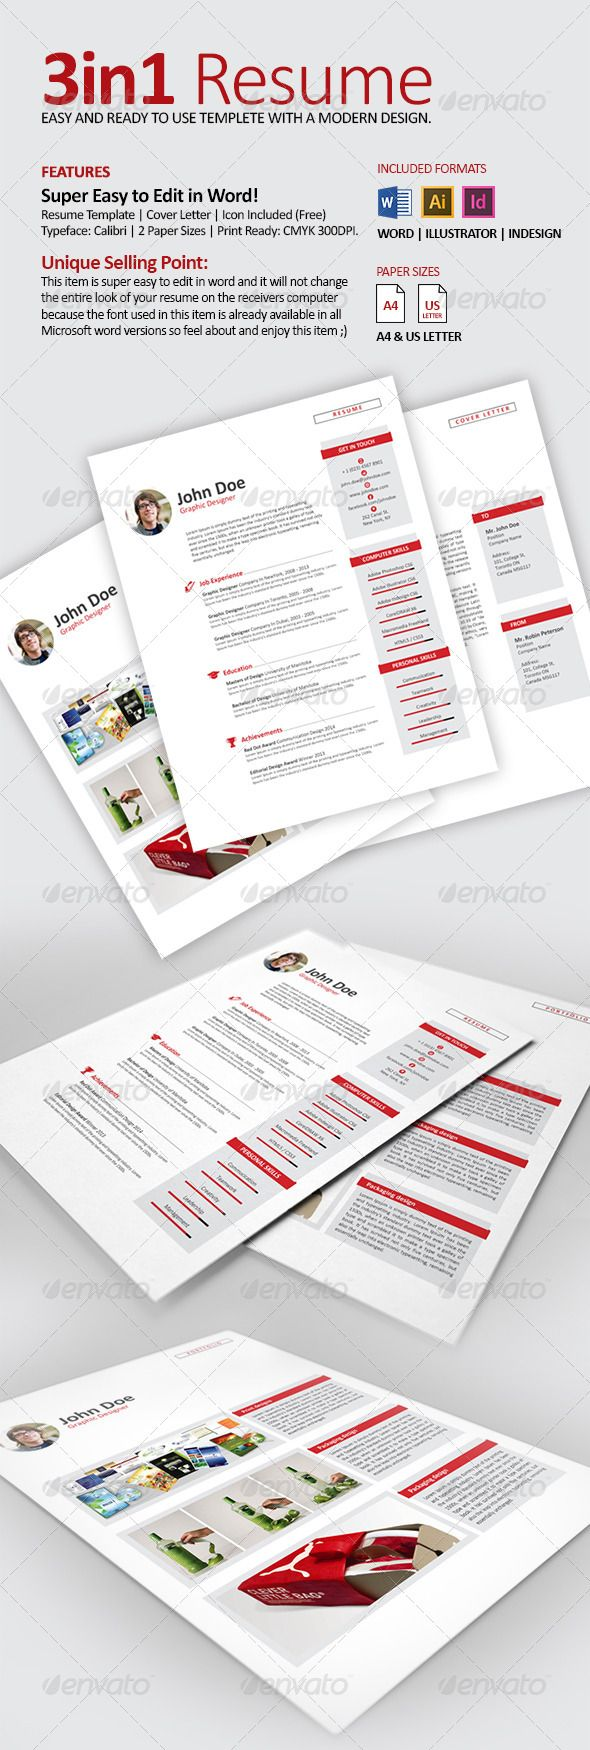 Resume CV with Word Files Resume cv Filing and Creative resume